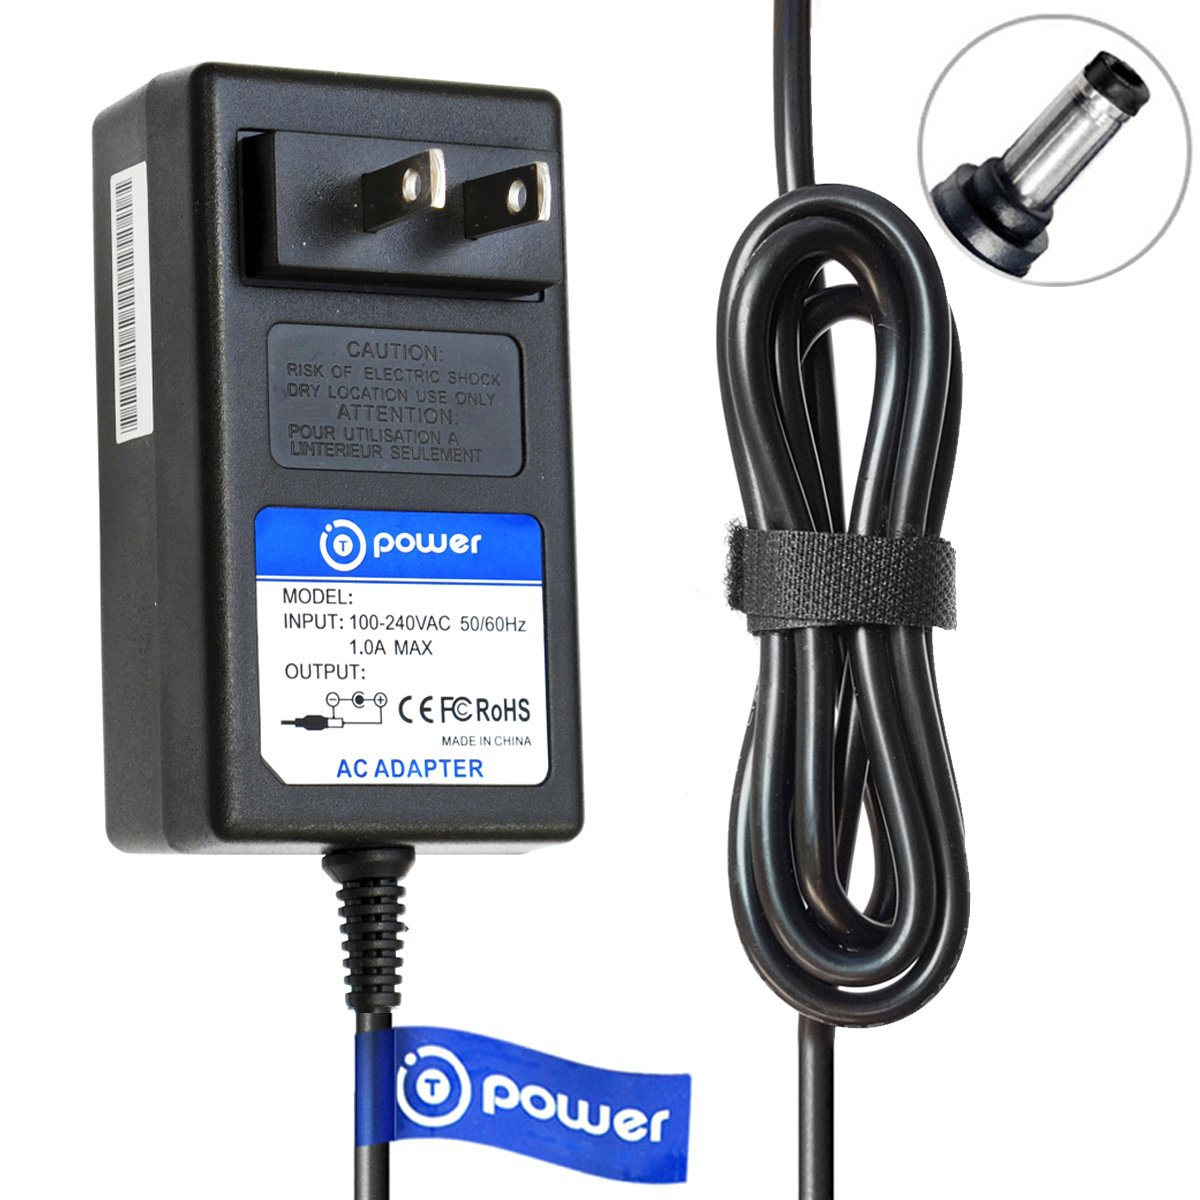 T POWER Ac Dc Adapter Charger Compatible with ILIFE A4, A4s, A6, V1, V3, V5, V5 Pro, V7, X5 Robotic Vacuum Cleaner Power Supply by T POWER